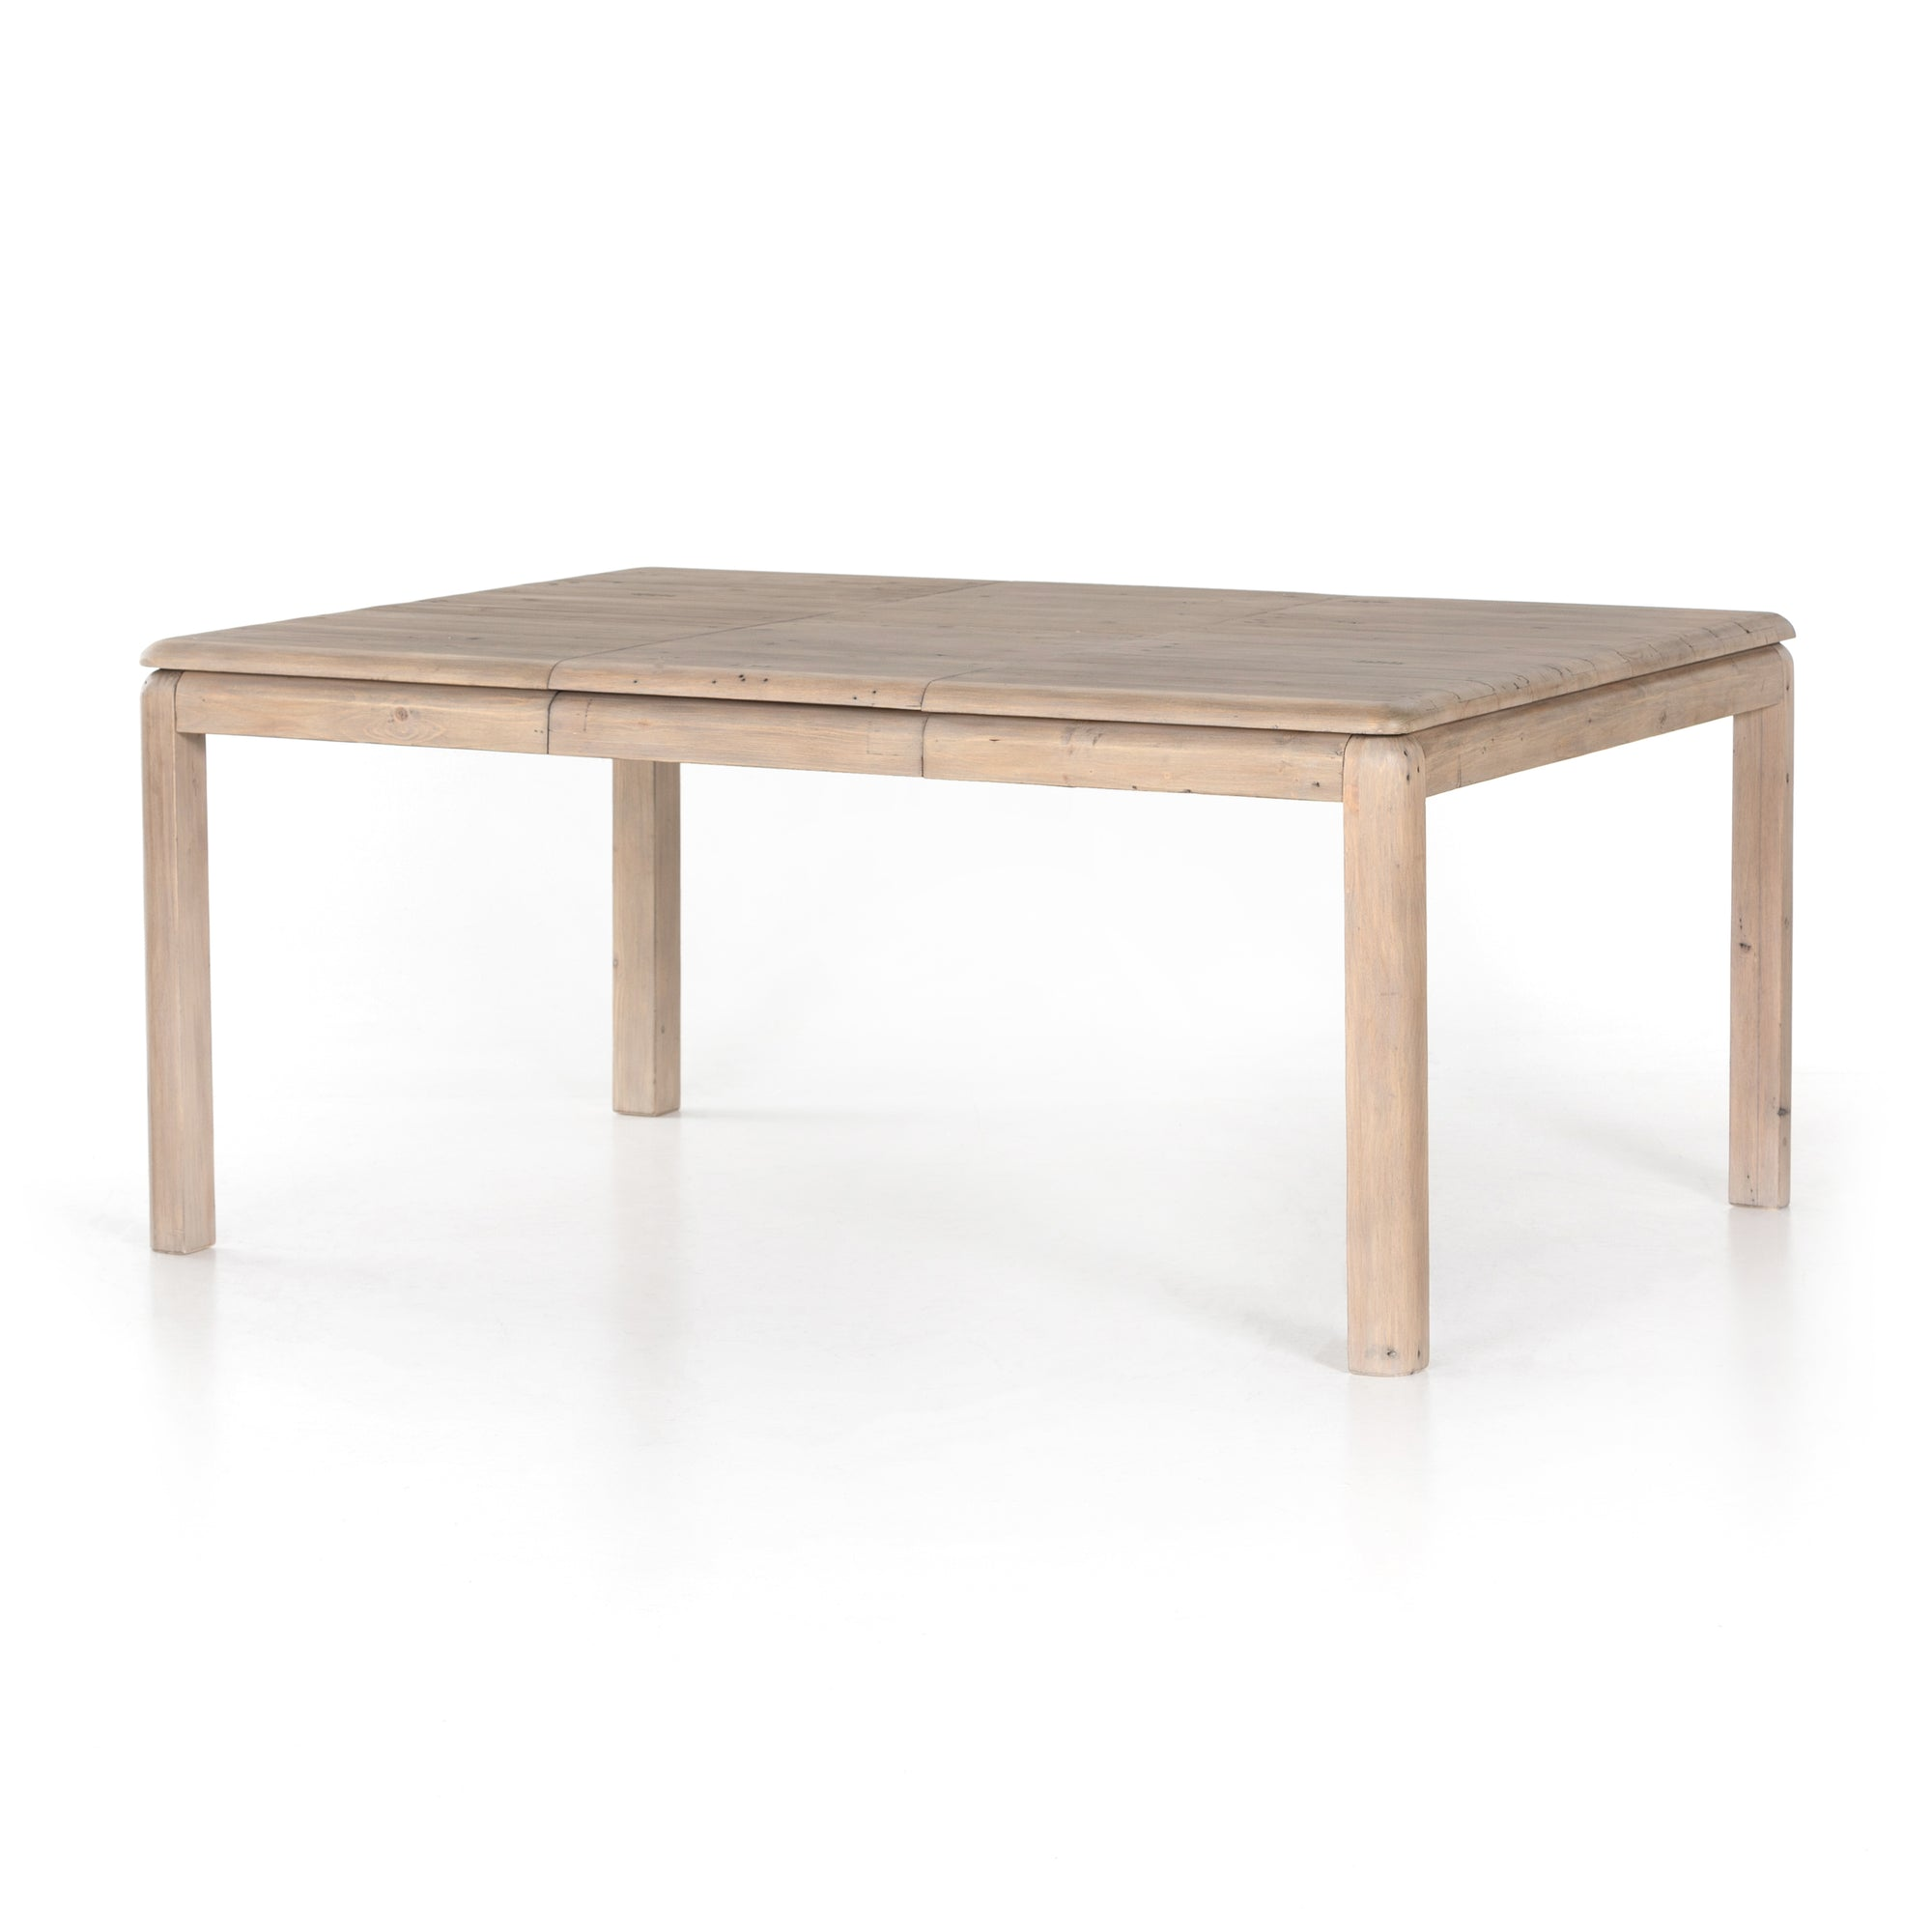 Monroe Extension Dining Table - Rug & Weave